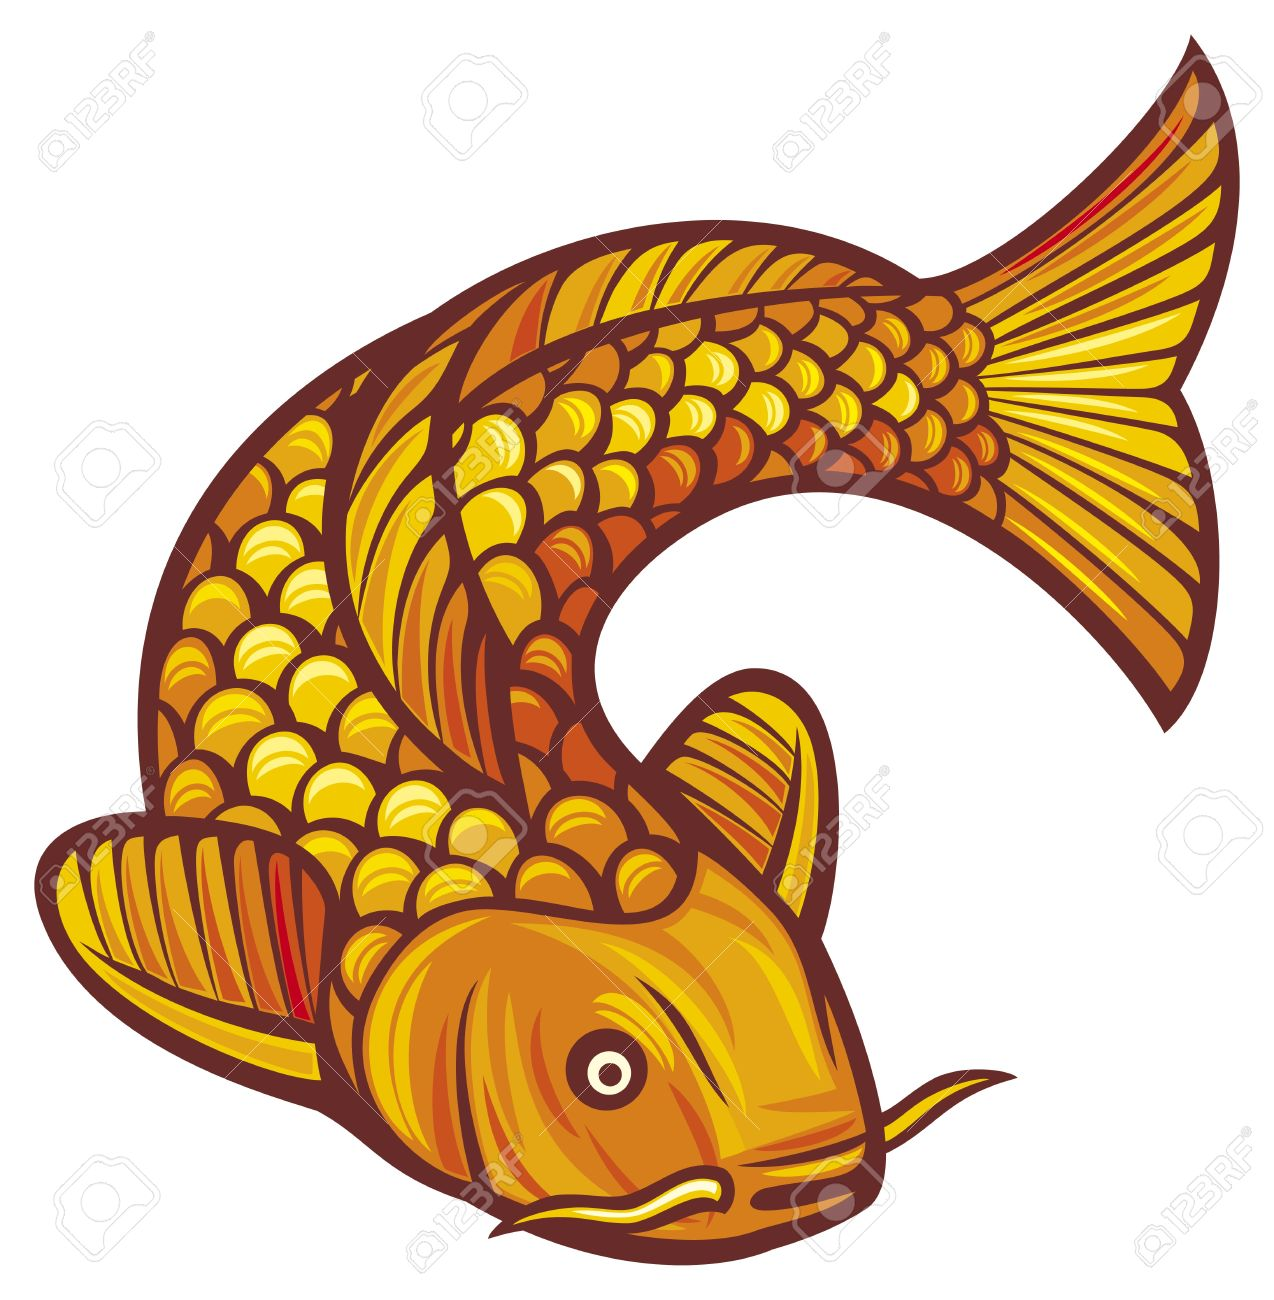 Koi clipart #20, Download drawings